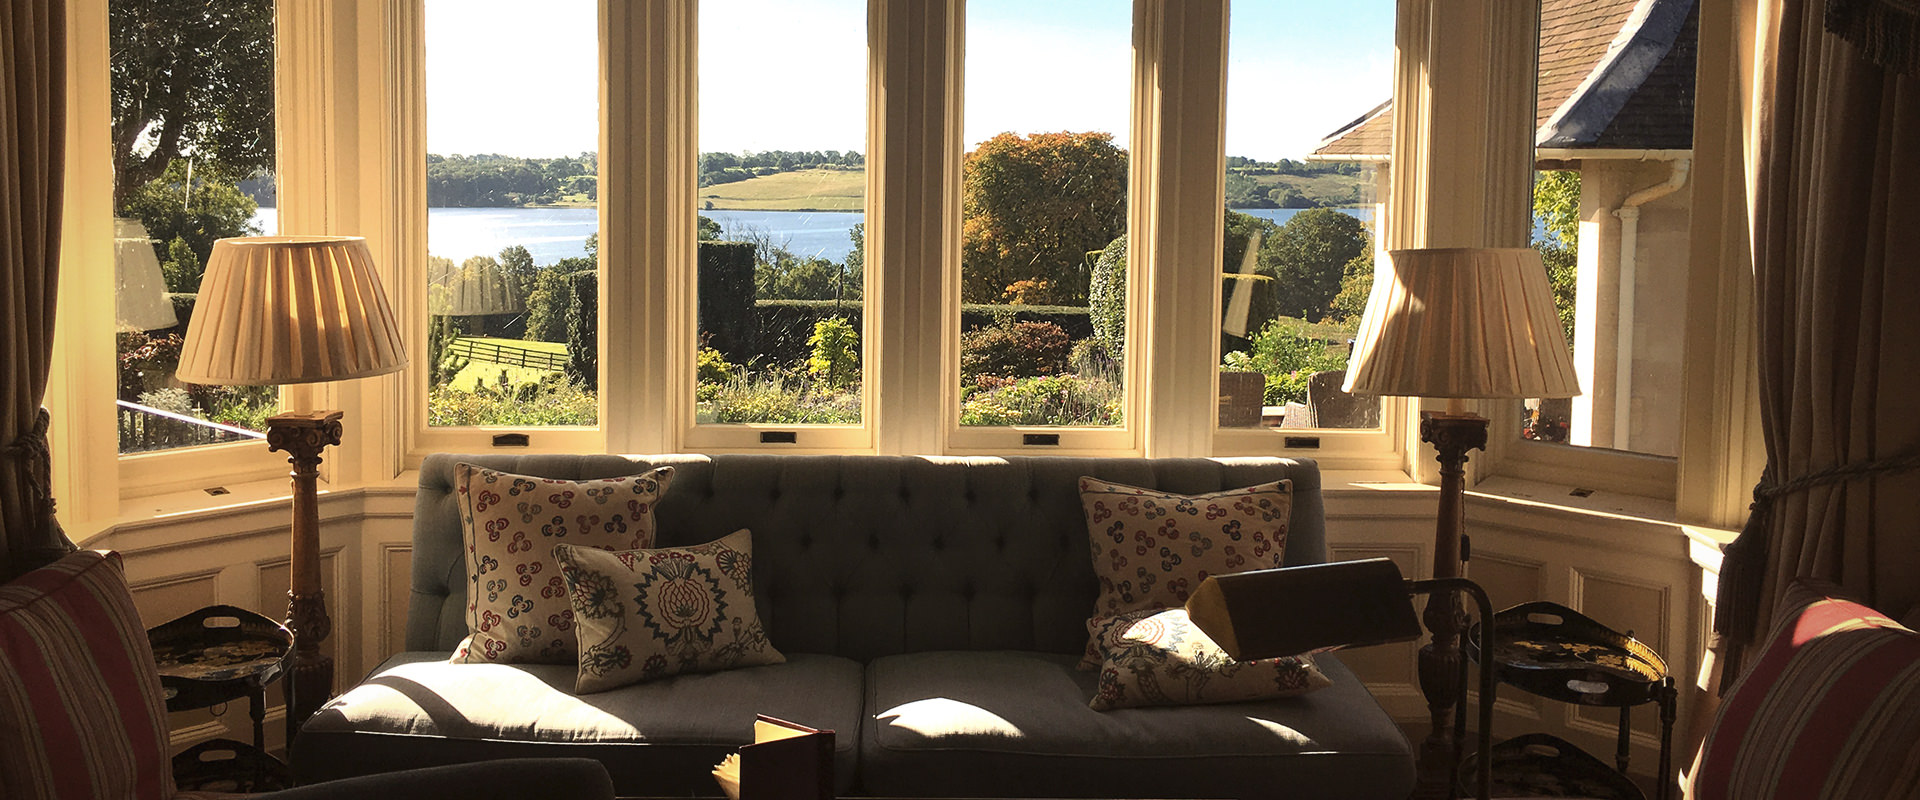 First Impressions of Hambleton Hall